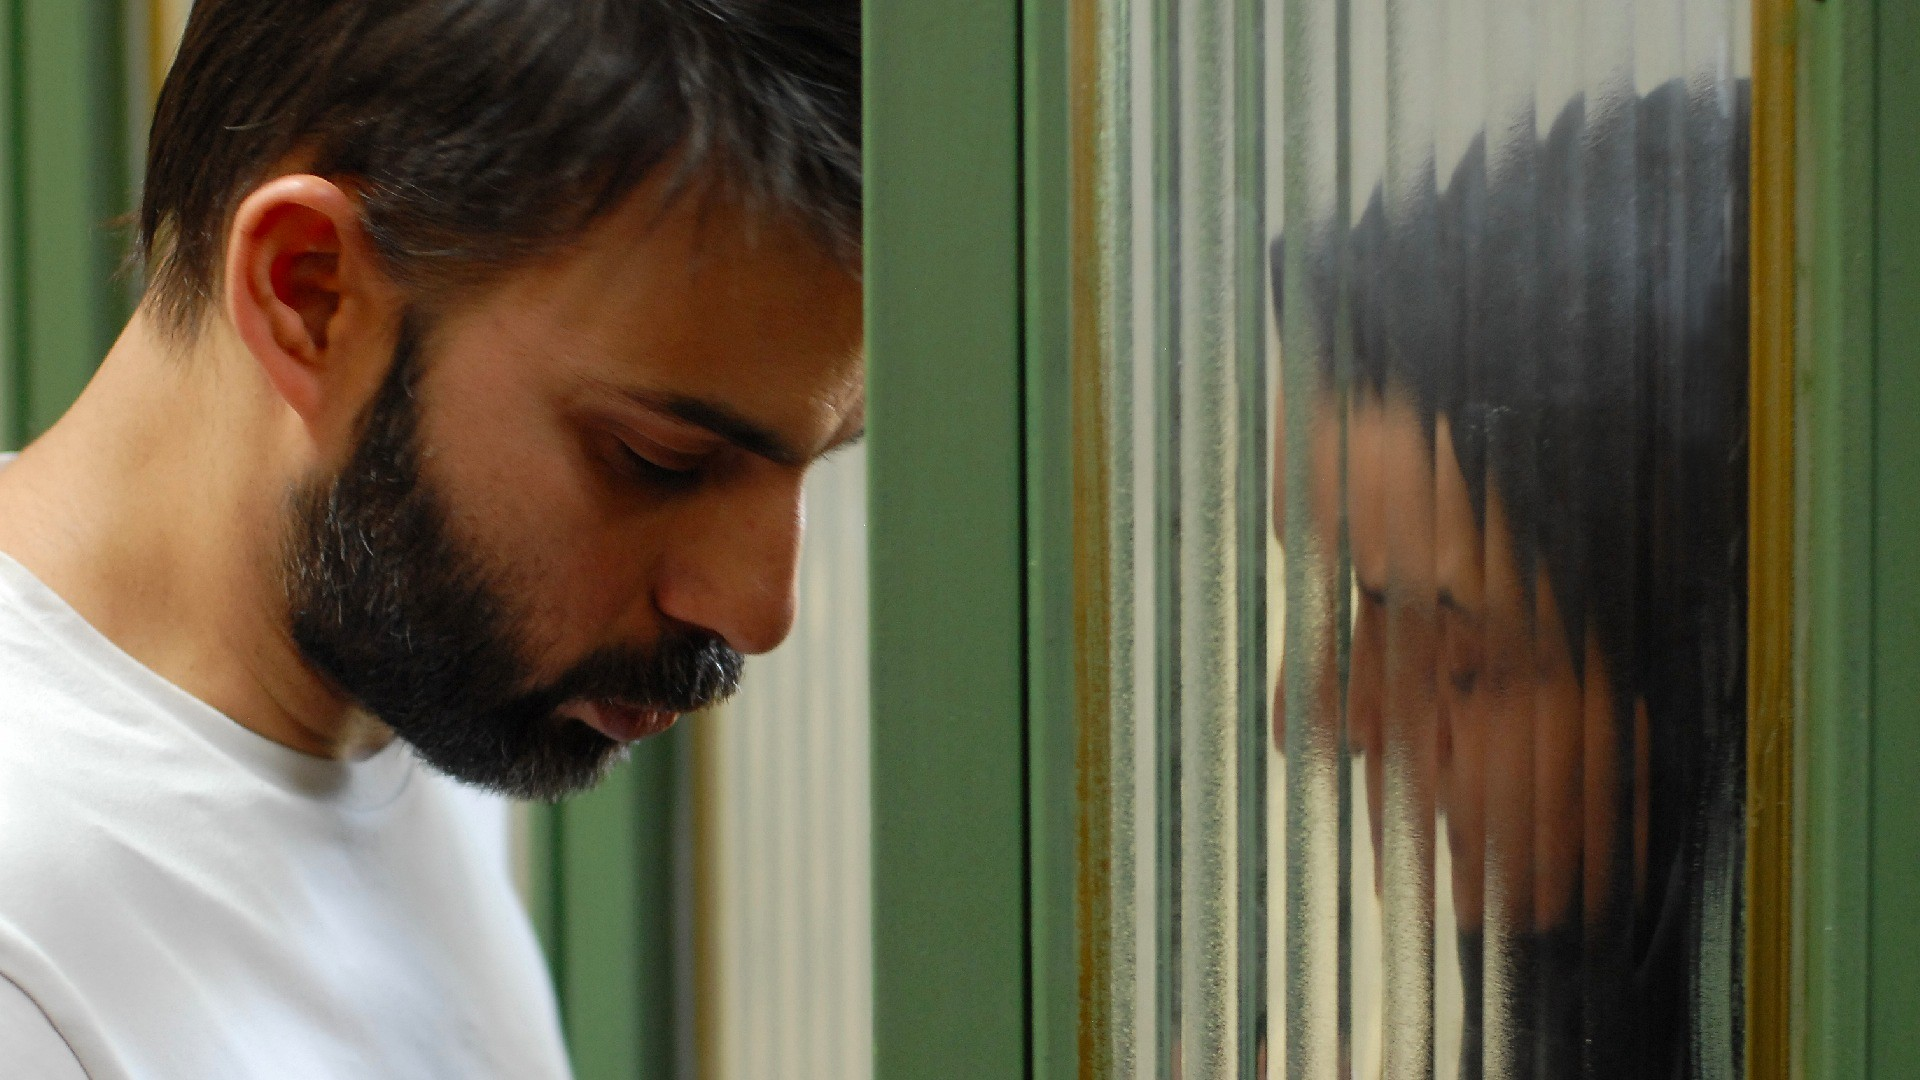 The Importance of Color, Framing, and Historical Context In Asghar Farhadi's 'A Separation'